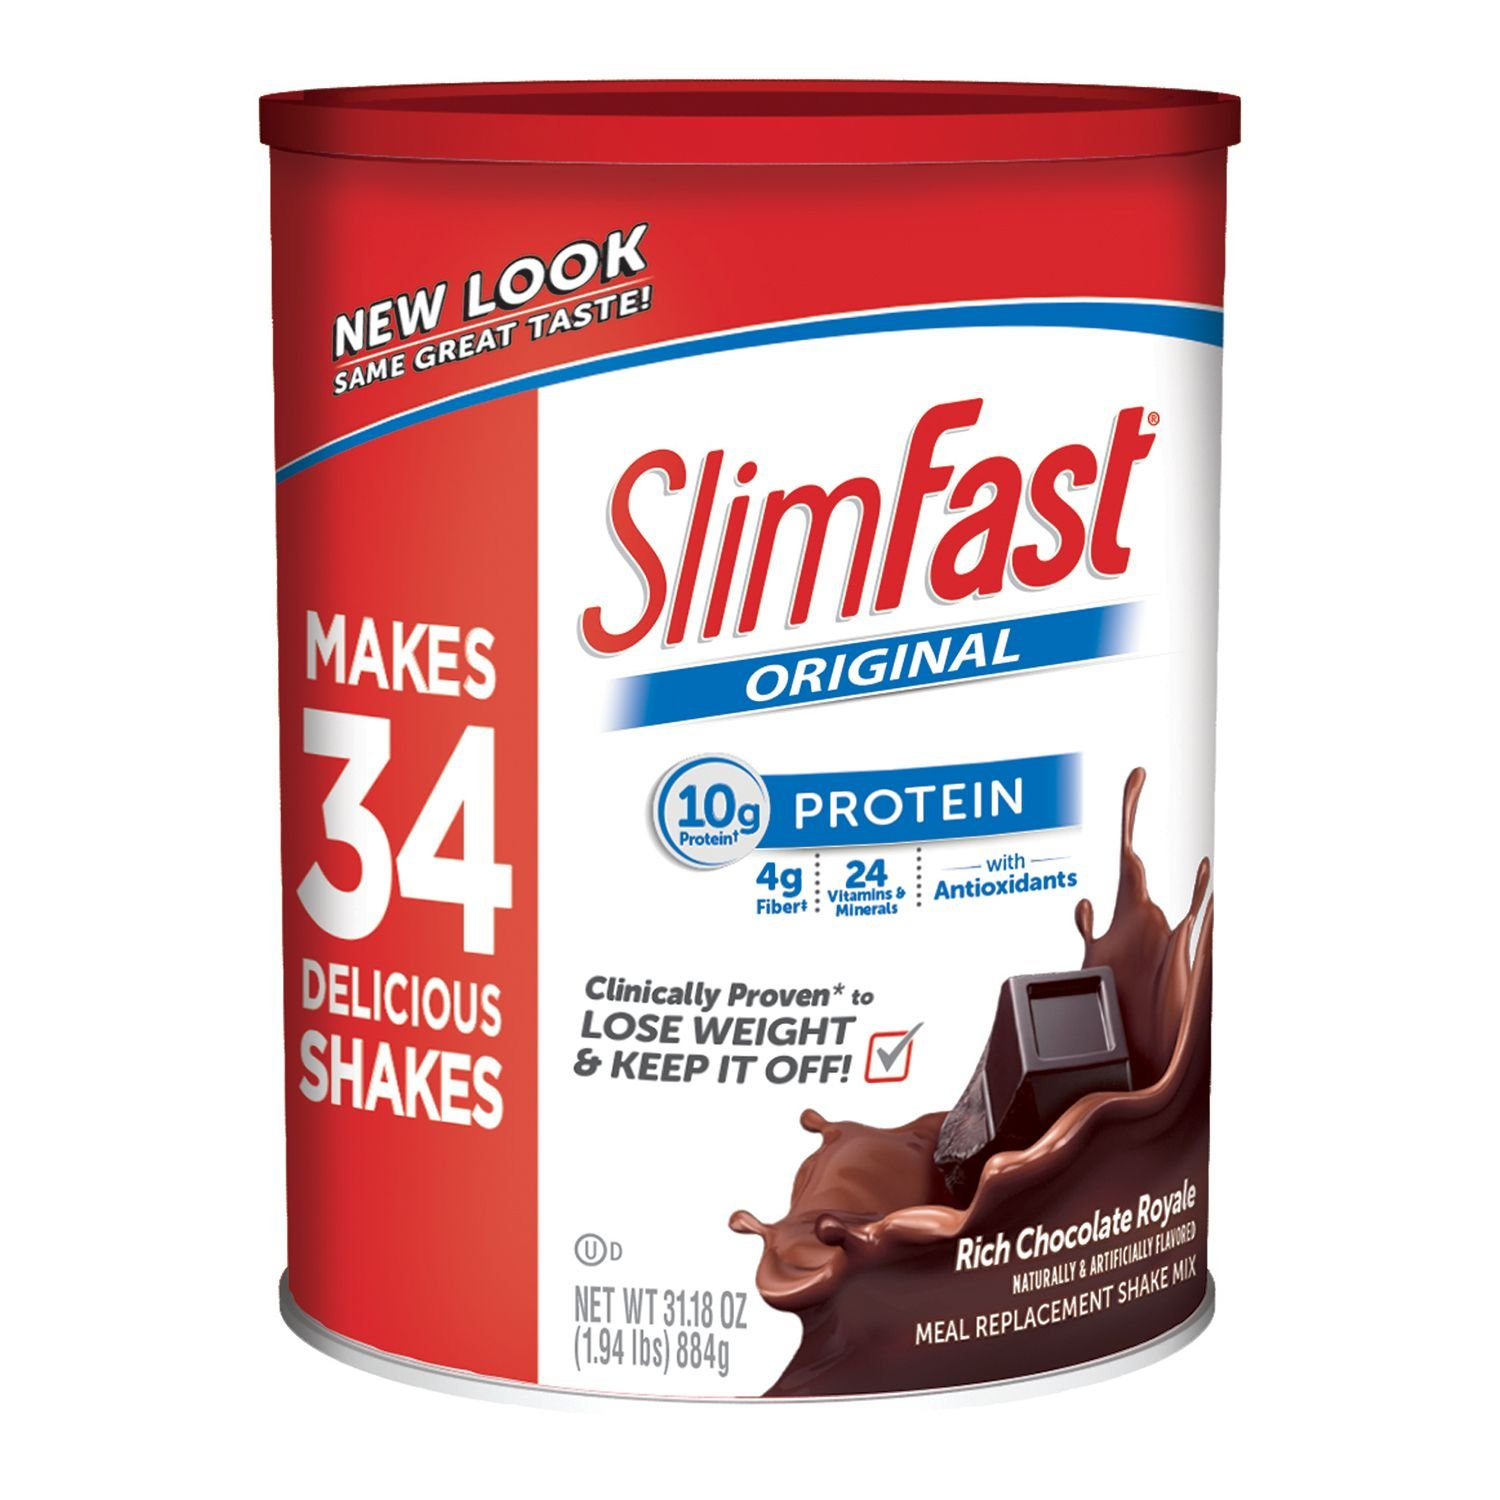 SlimFast! Chocolate Royale Shake Mix, 31.18 oz. (pack of 6) by SlimFast (Image #1)